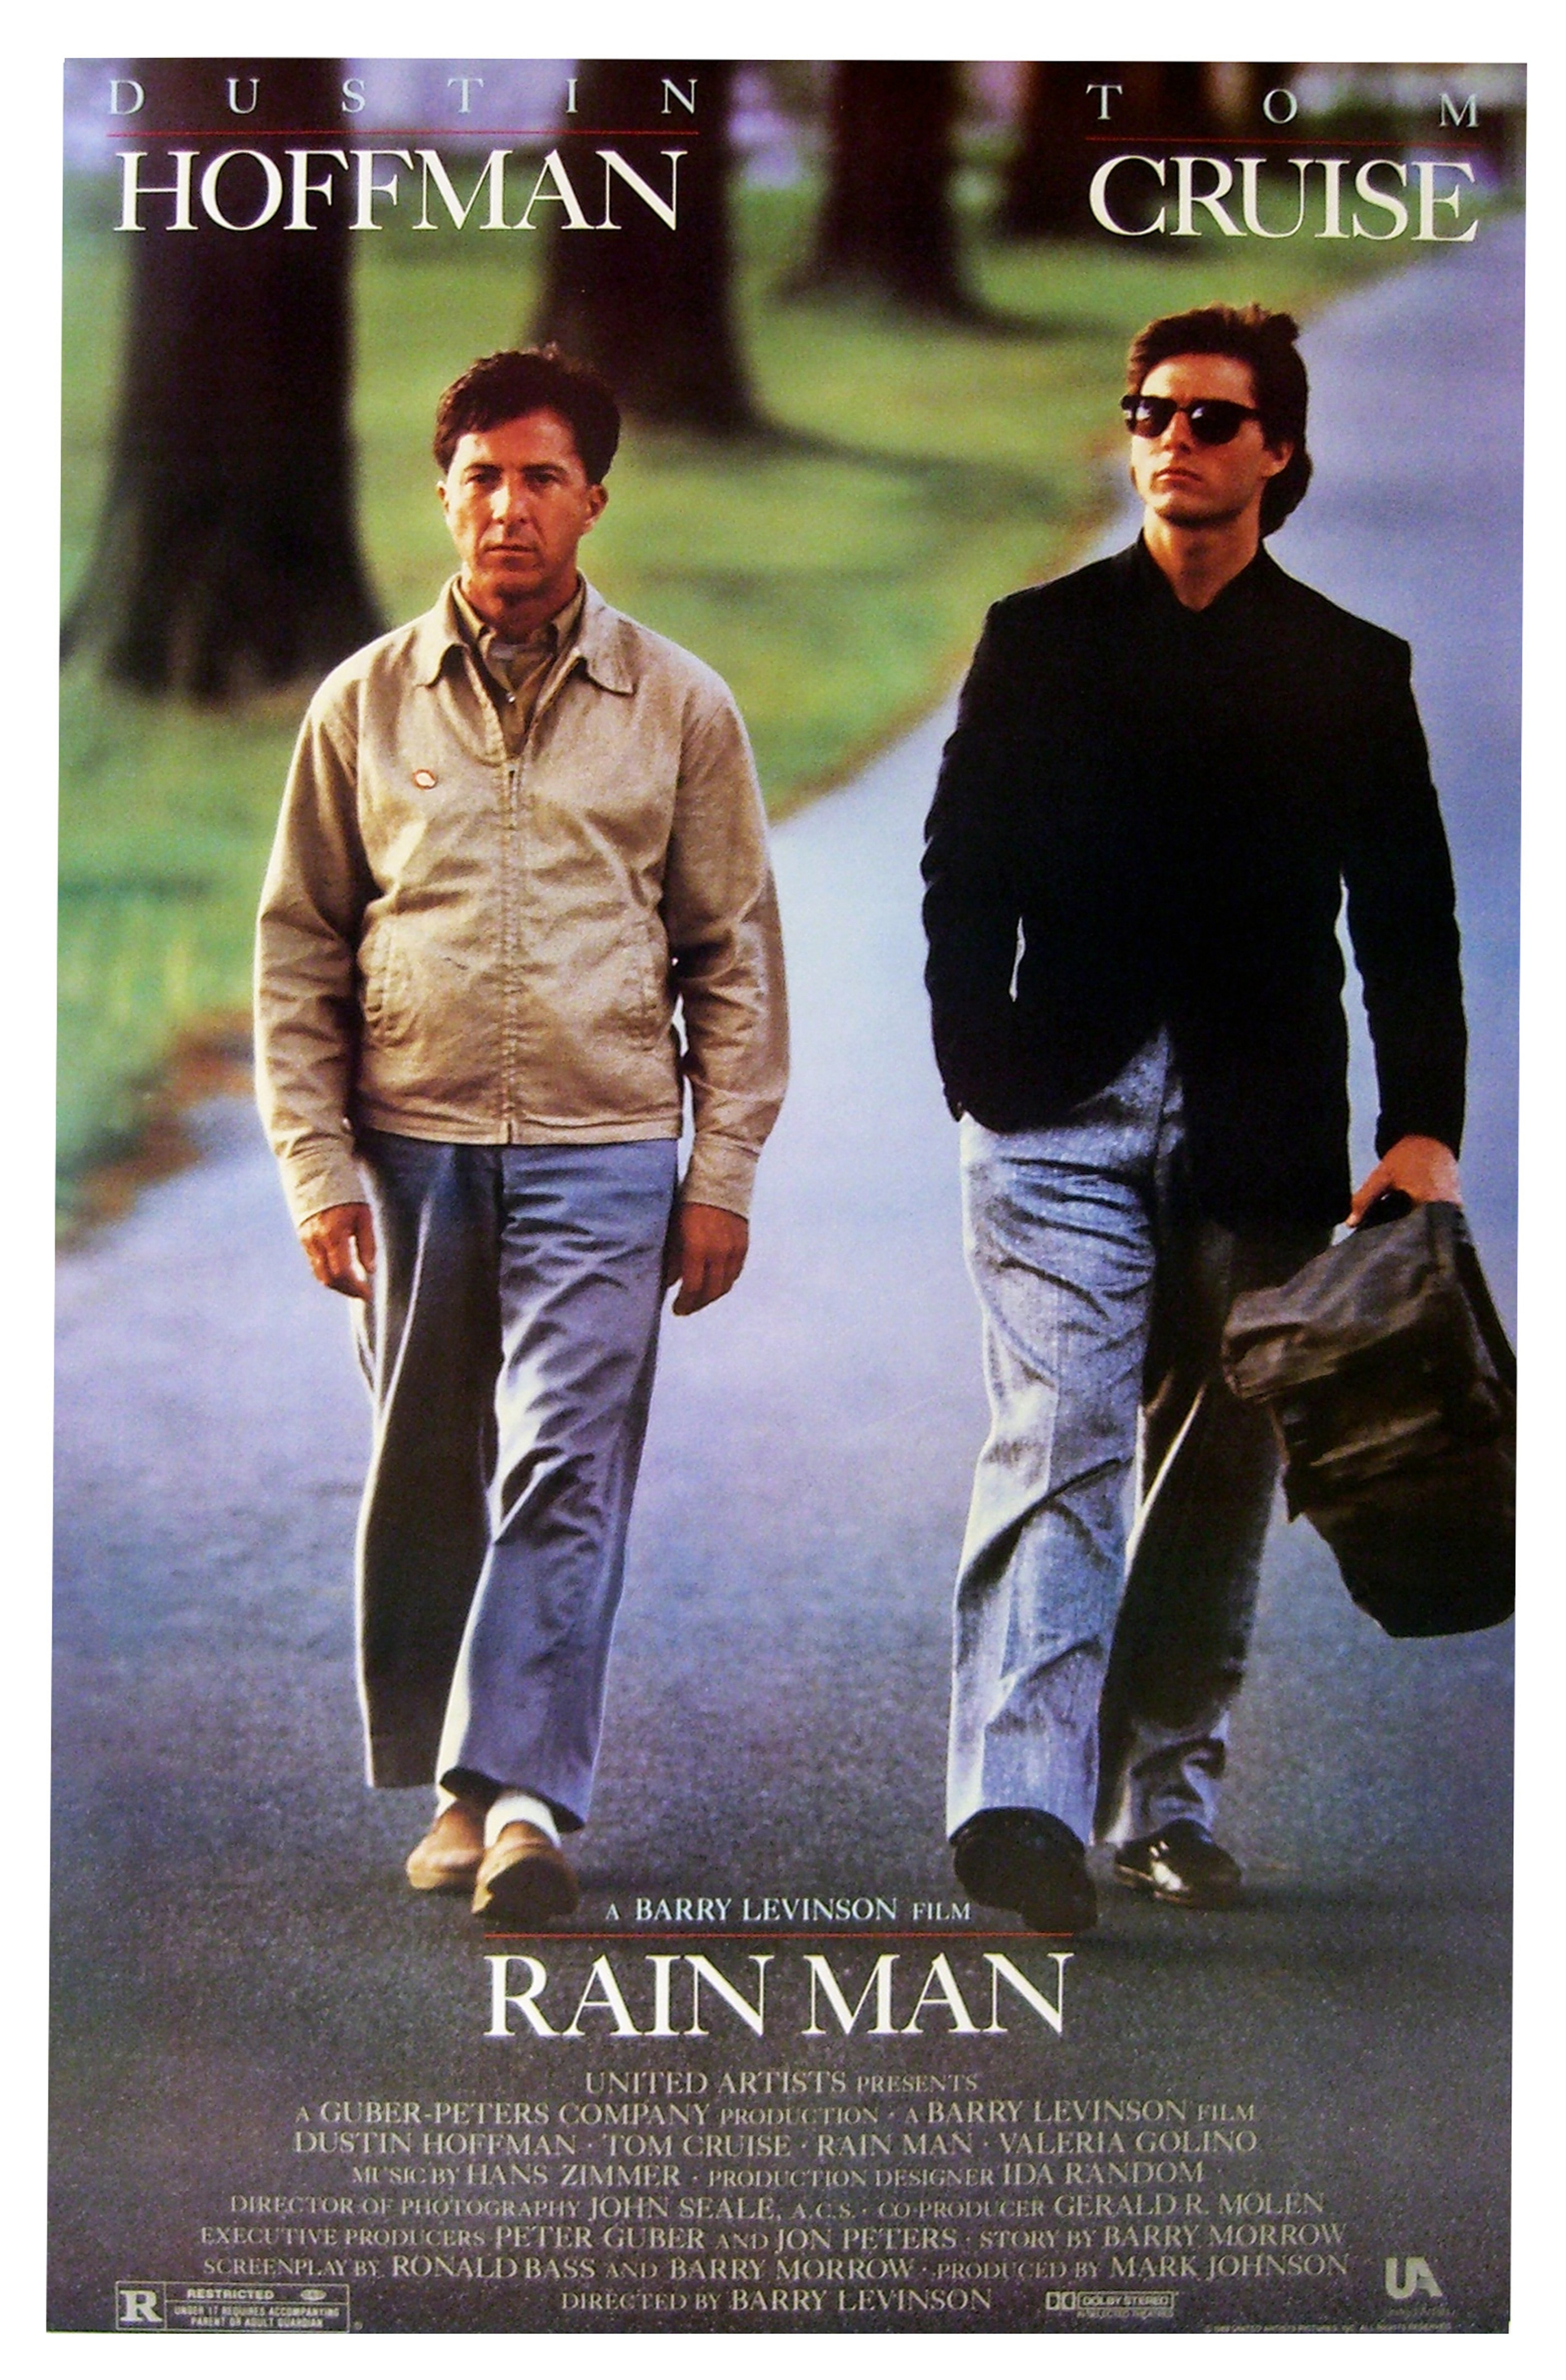 The poster for the 1998 movie  Rain Man,  starring Dustin Hoffman and Tom Cruise. The movie was the highest-grossing film of the year and won four Oscars, including Best Actor for Hoffman